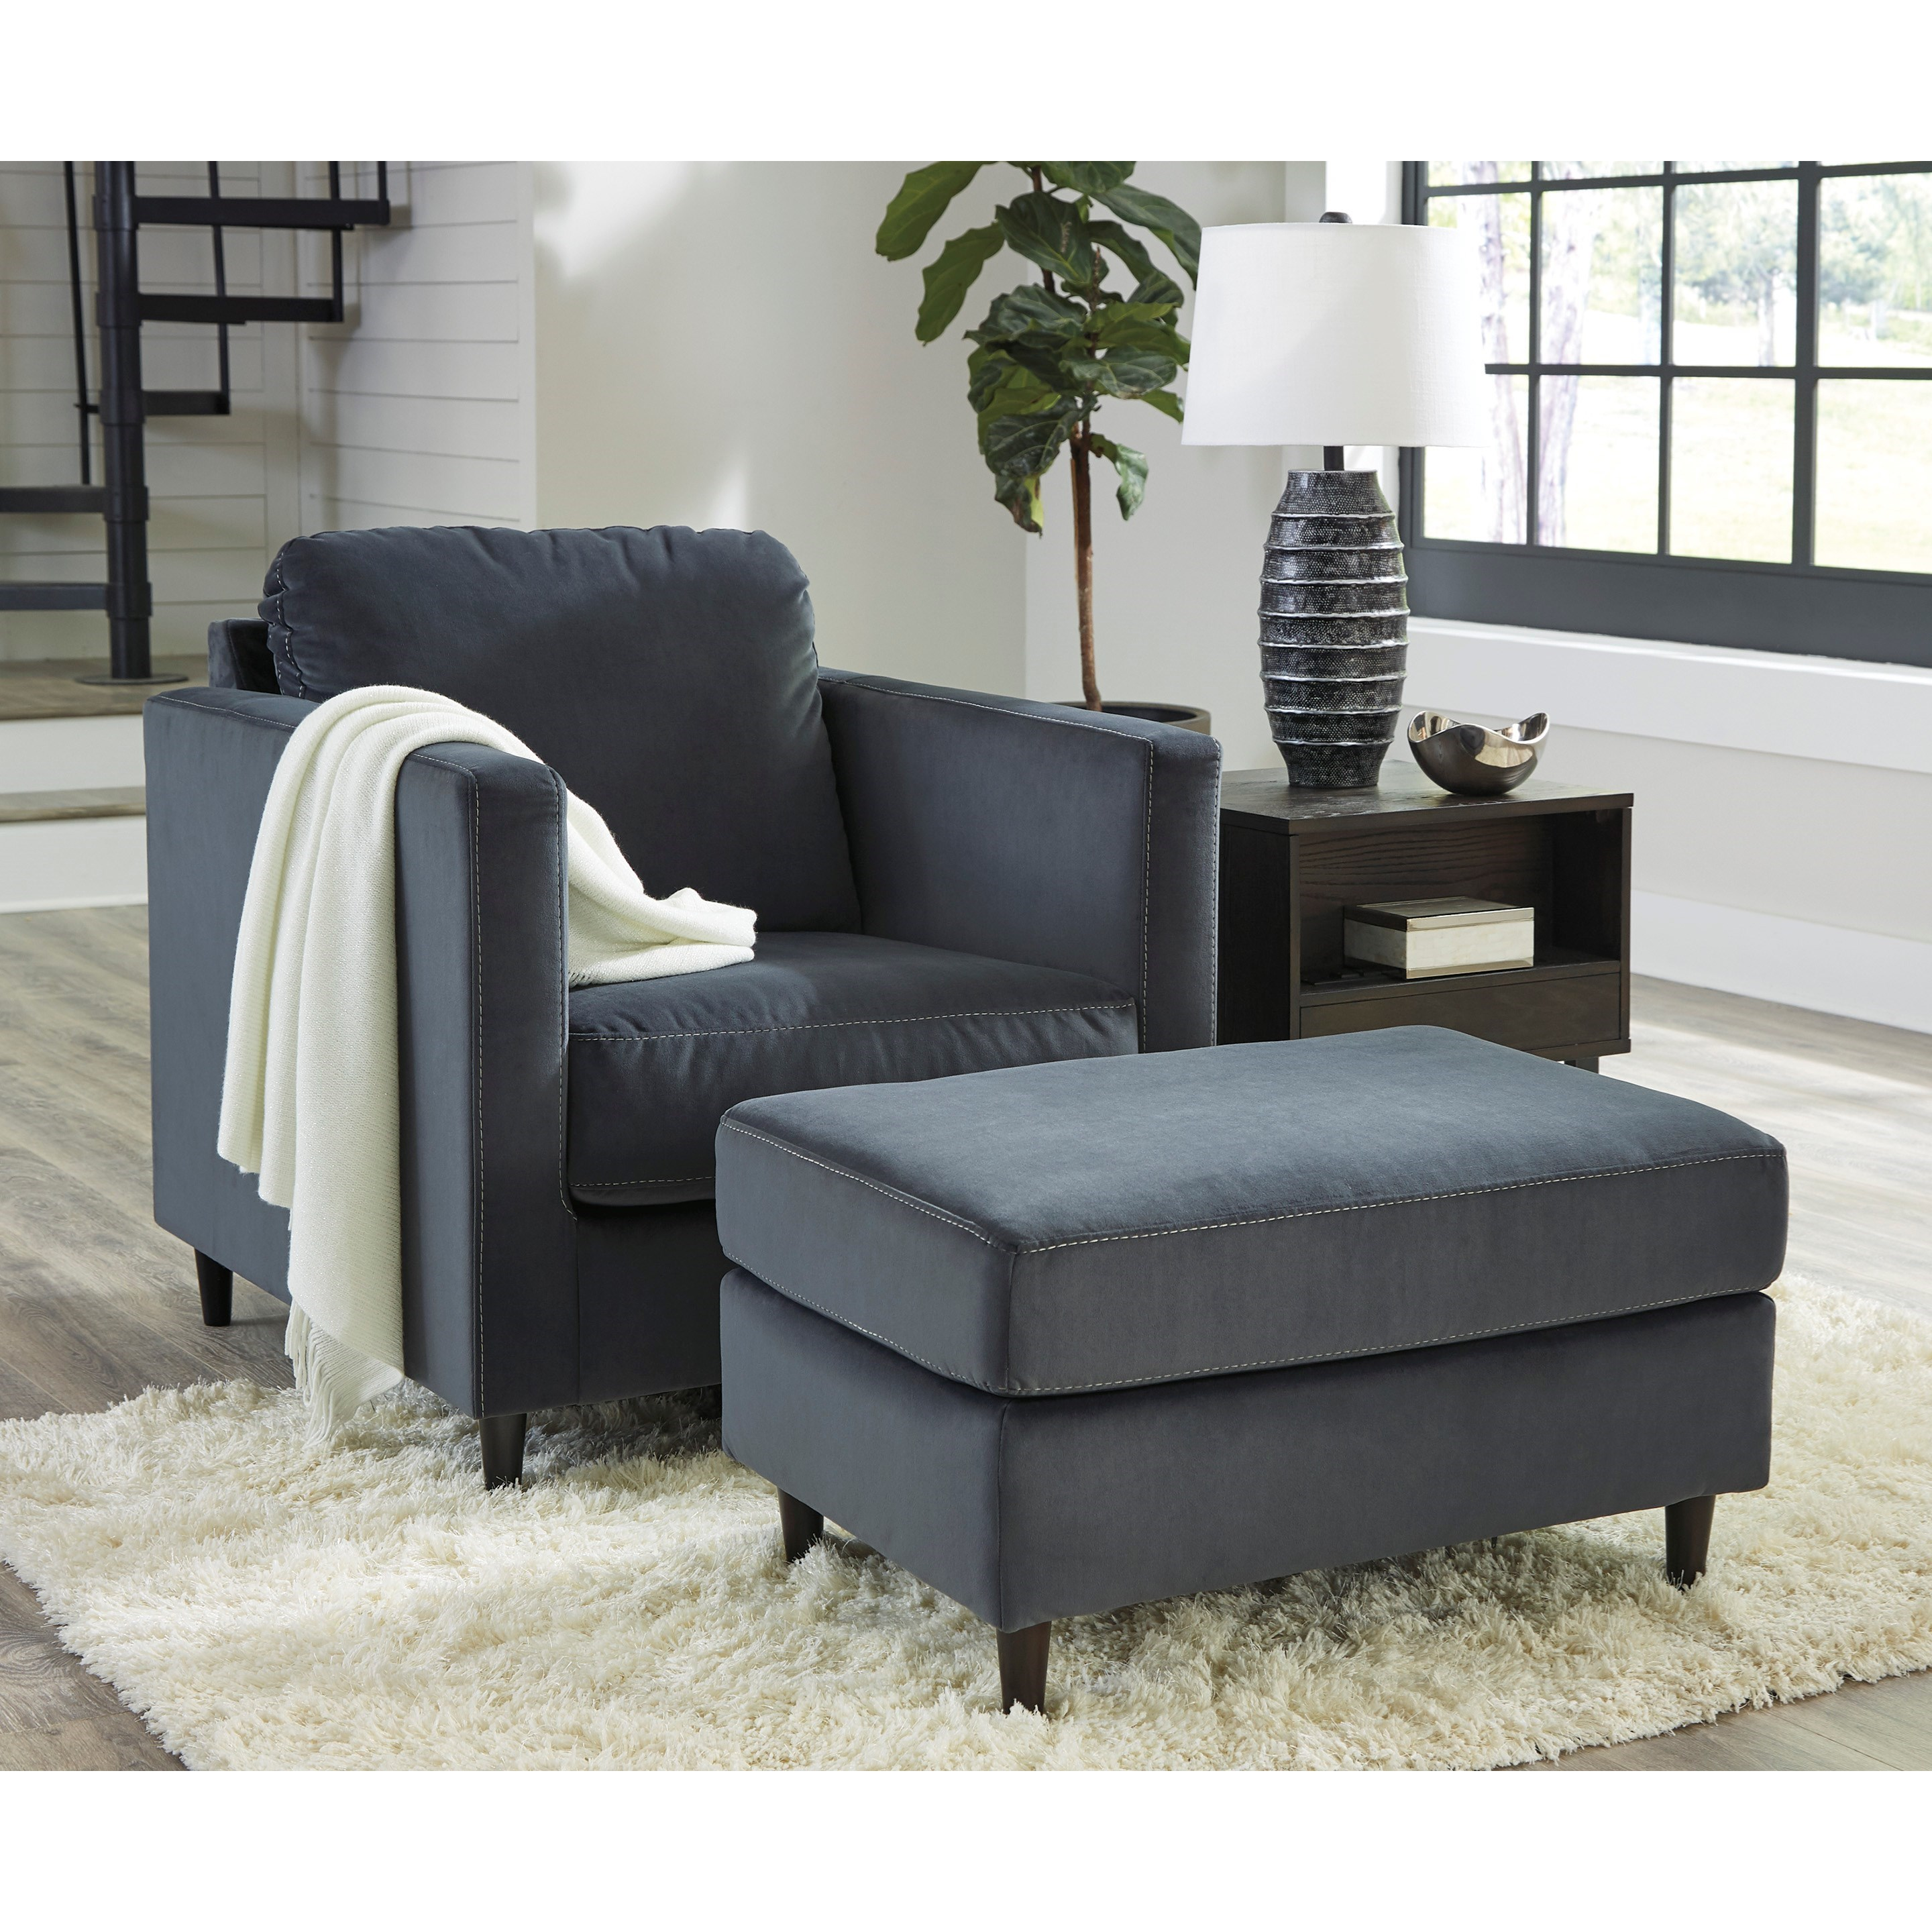 Kennewick Chair and Ottoman Set by Ashley (Signature Design) at Johnny Janosik